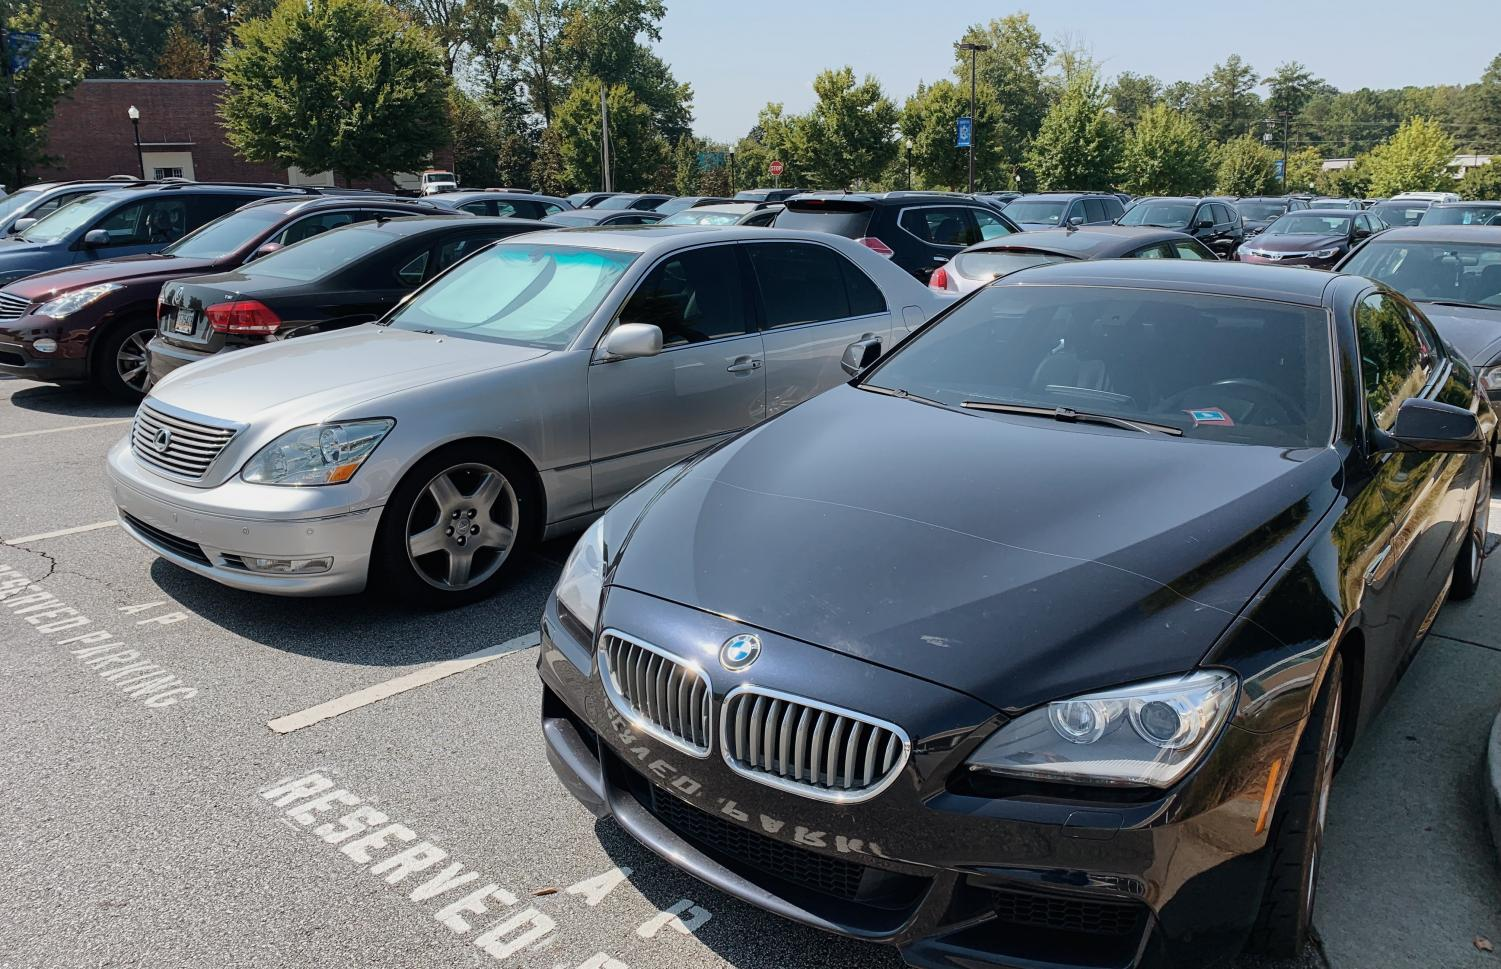 Cars parked in Chamblee's main lot.